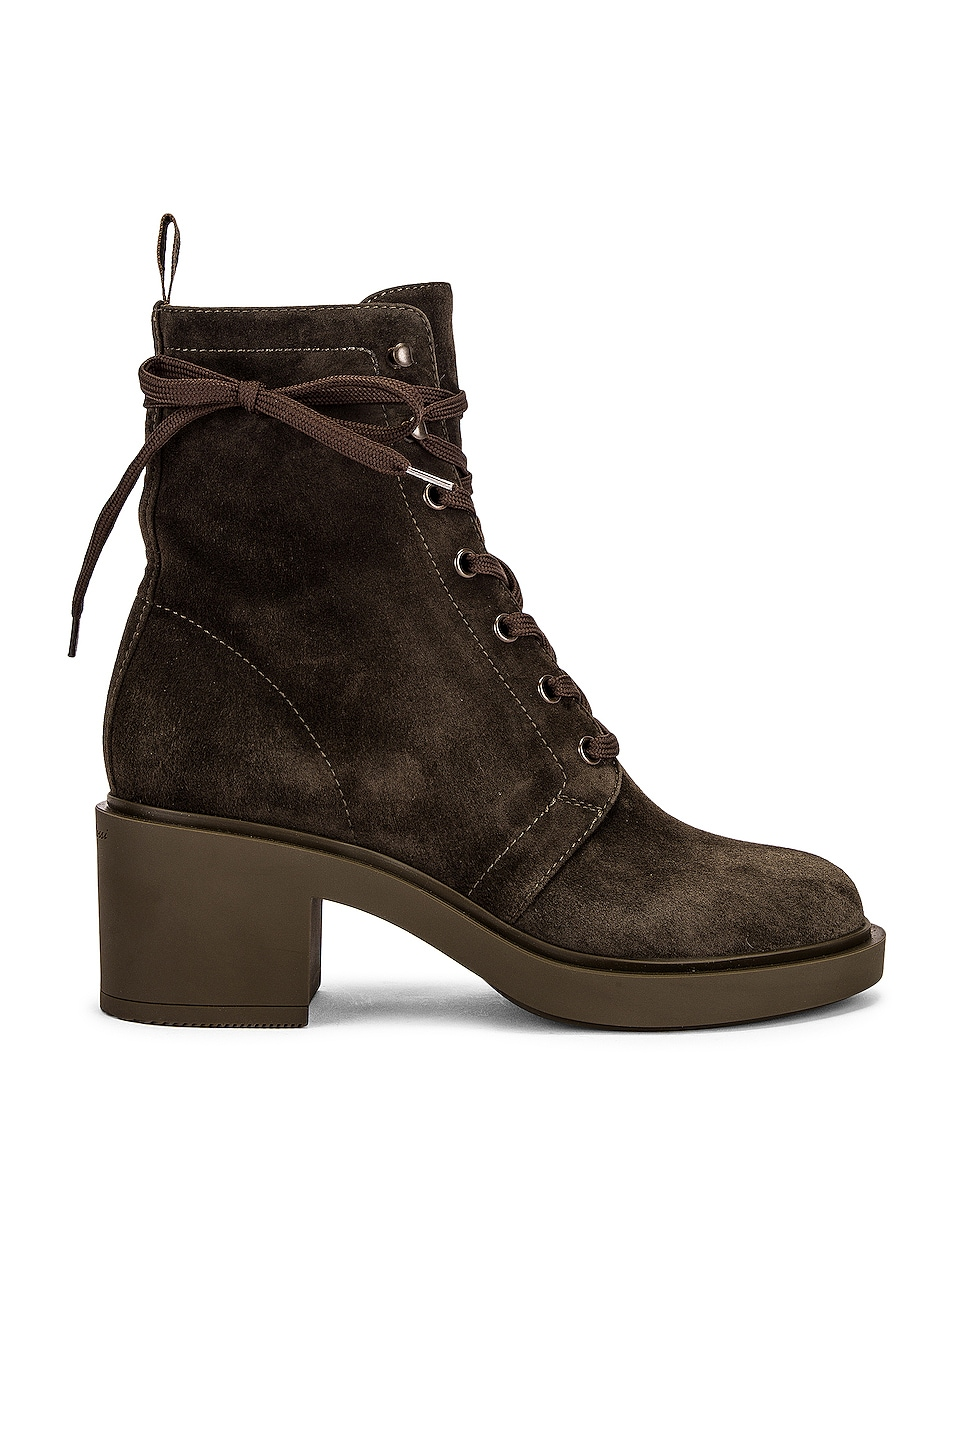 Image 1 of Gianvito Rossi Suede Lace Up Boots in Dark Olive